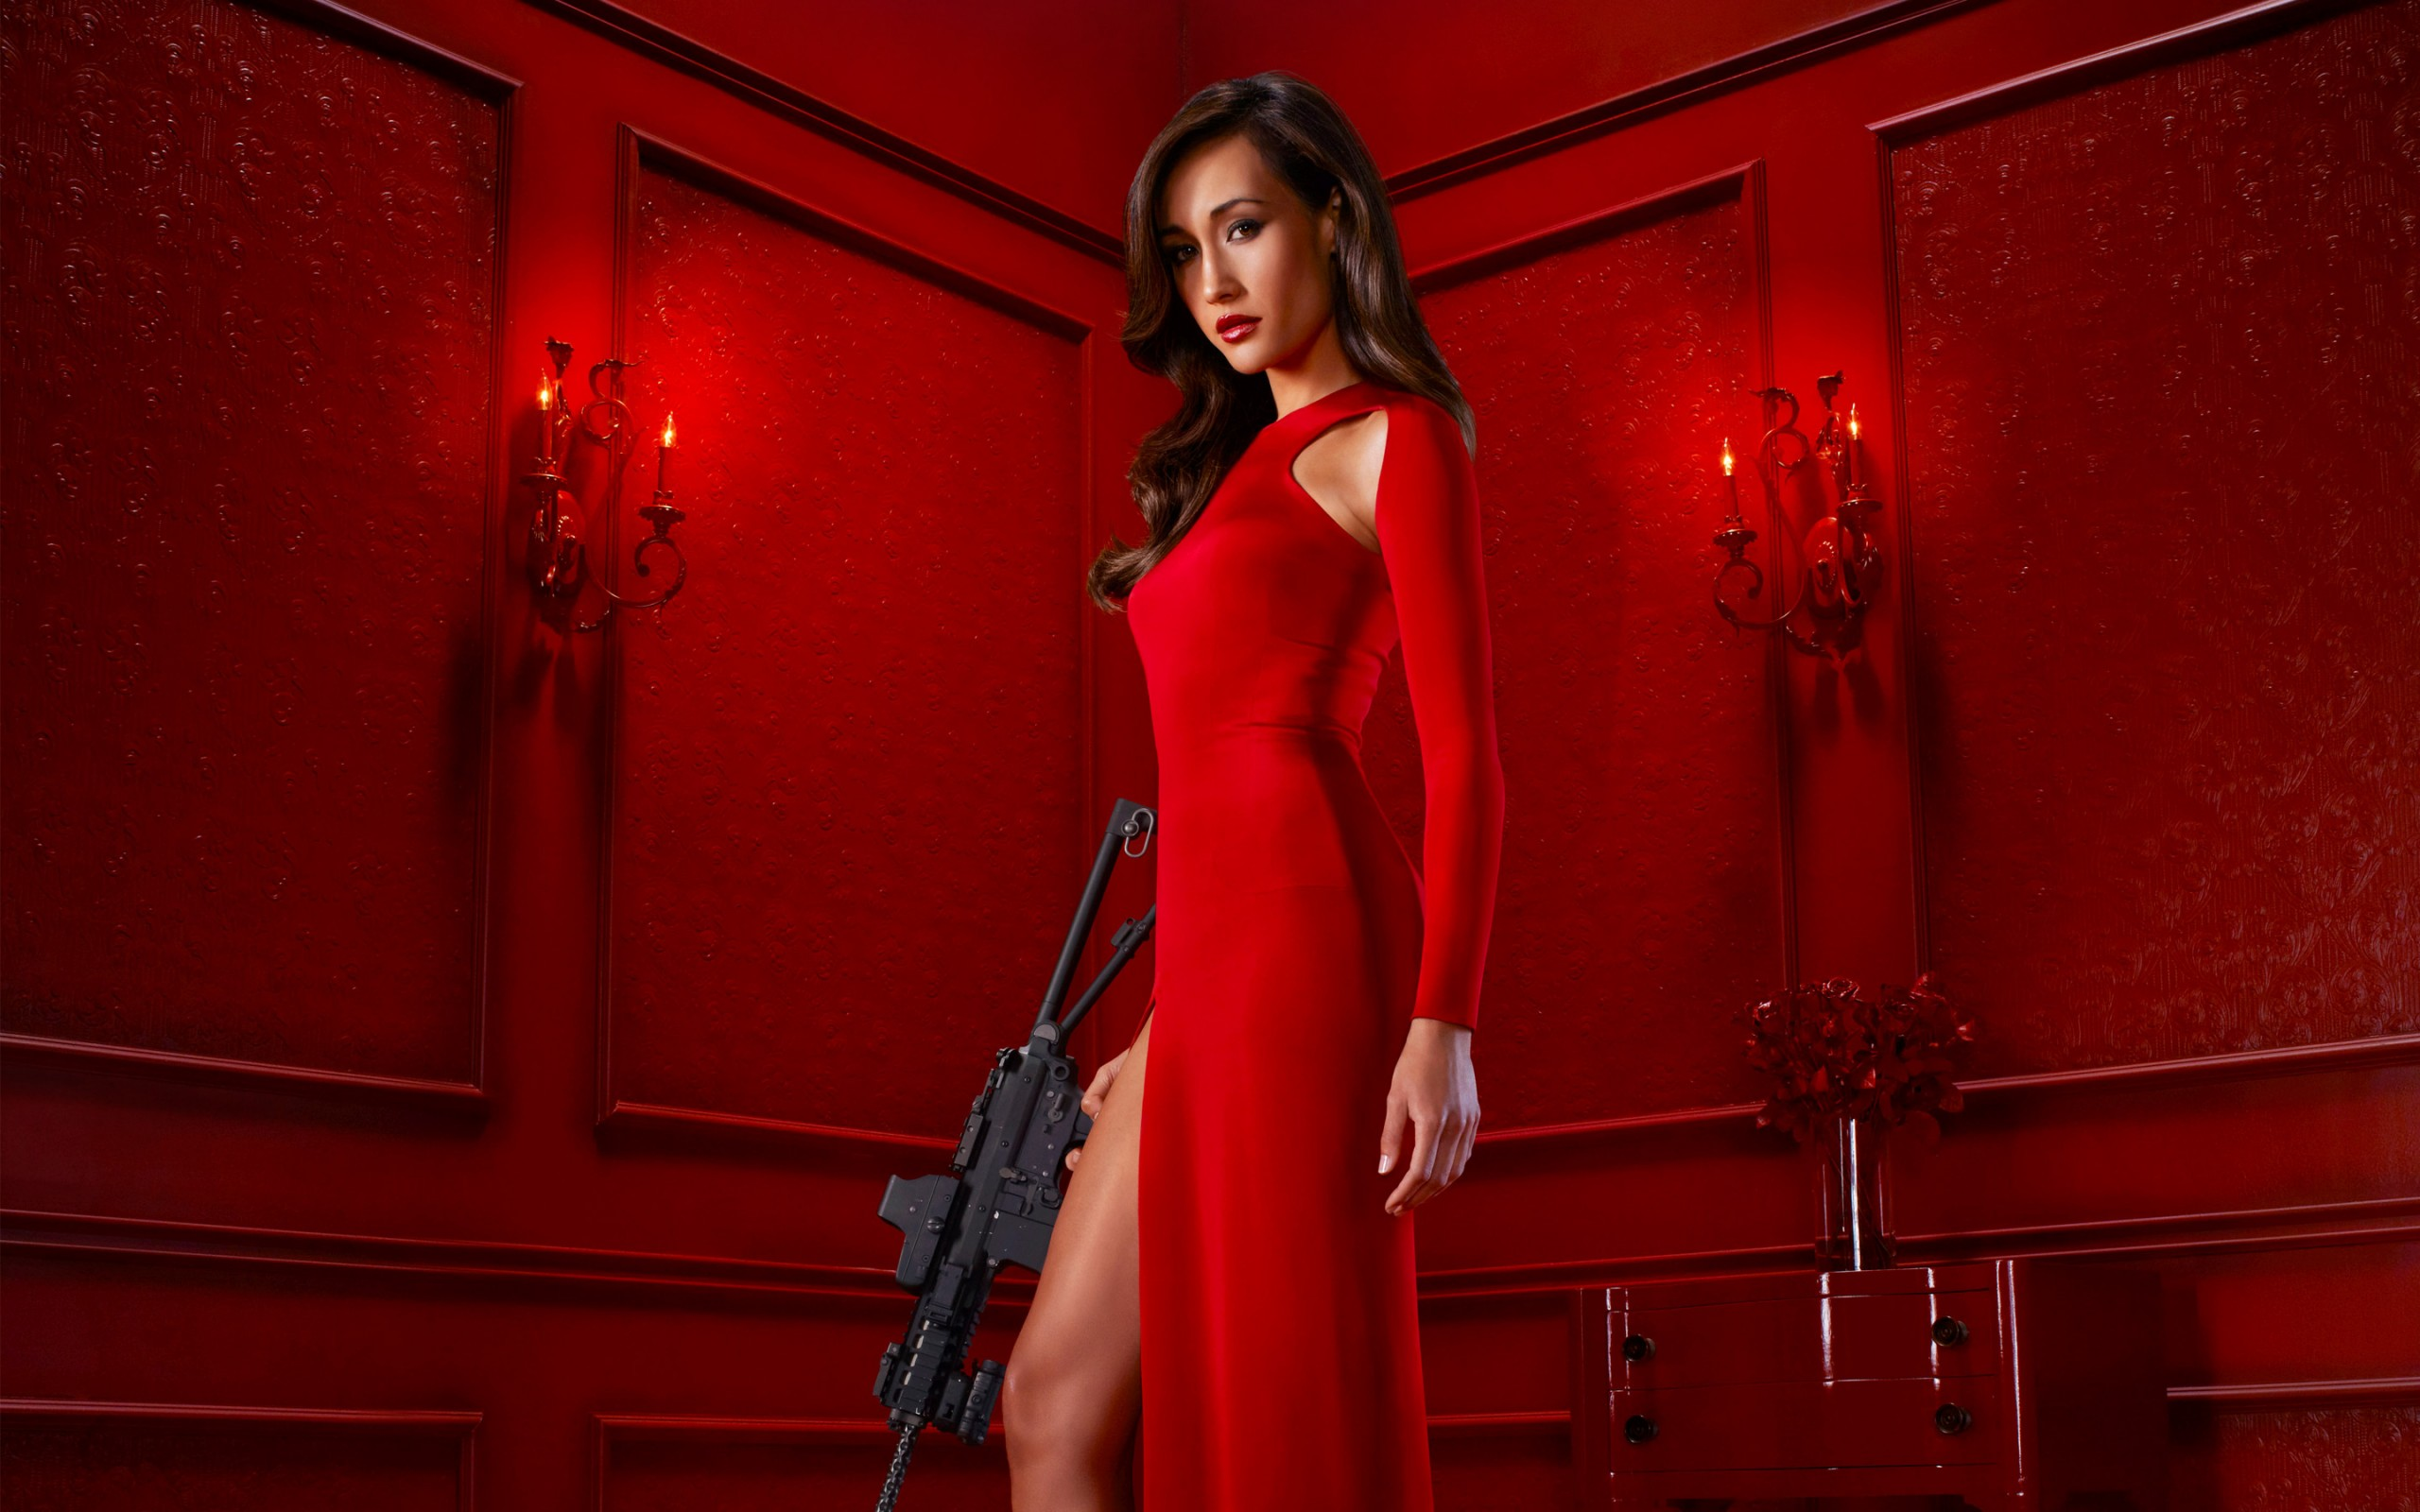 Girls With Guns Anime Wallpaper Maggie Q Nikita Movie Wallpapers Hd Wallpapers Id 17481